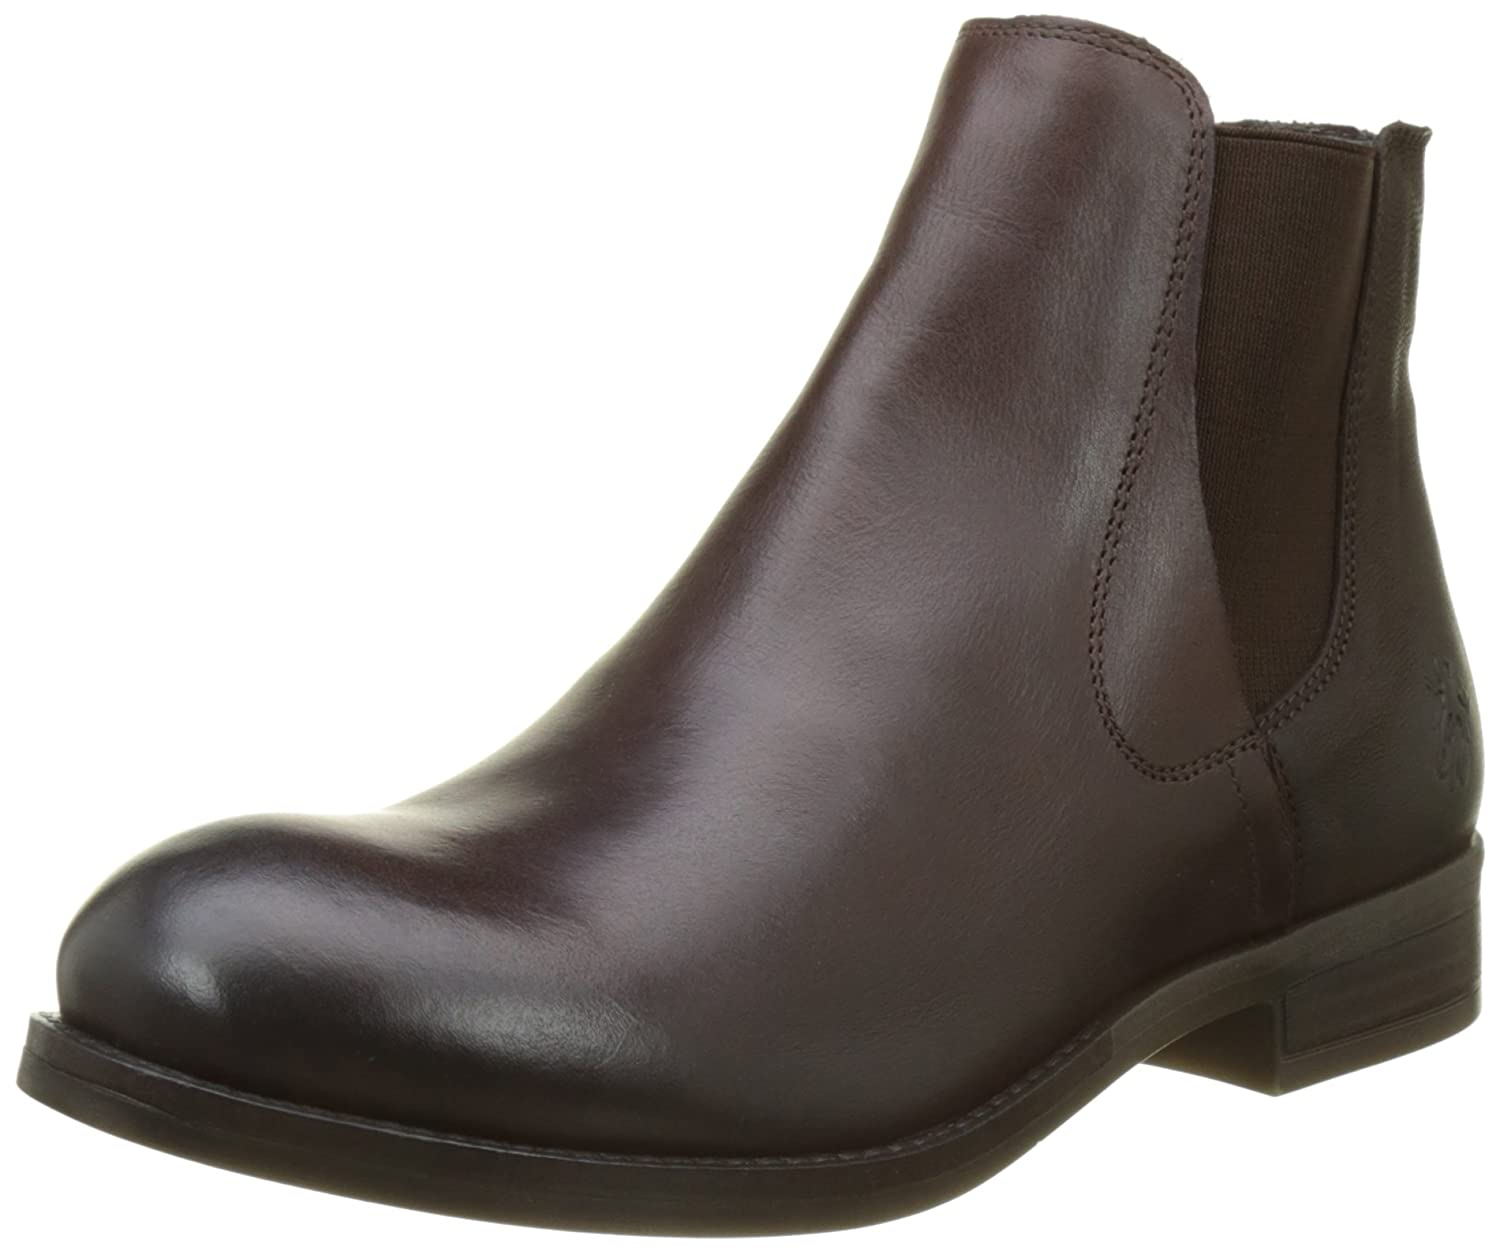 FLY London Women's Alls076fly Chelsea Boot B06WWKDDC7 40 M EU (9-9.5 US)|Dark Brown/Chocolate Rug/Cupido